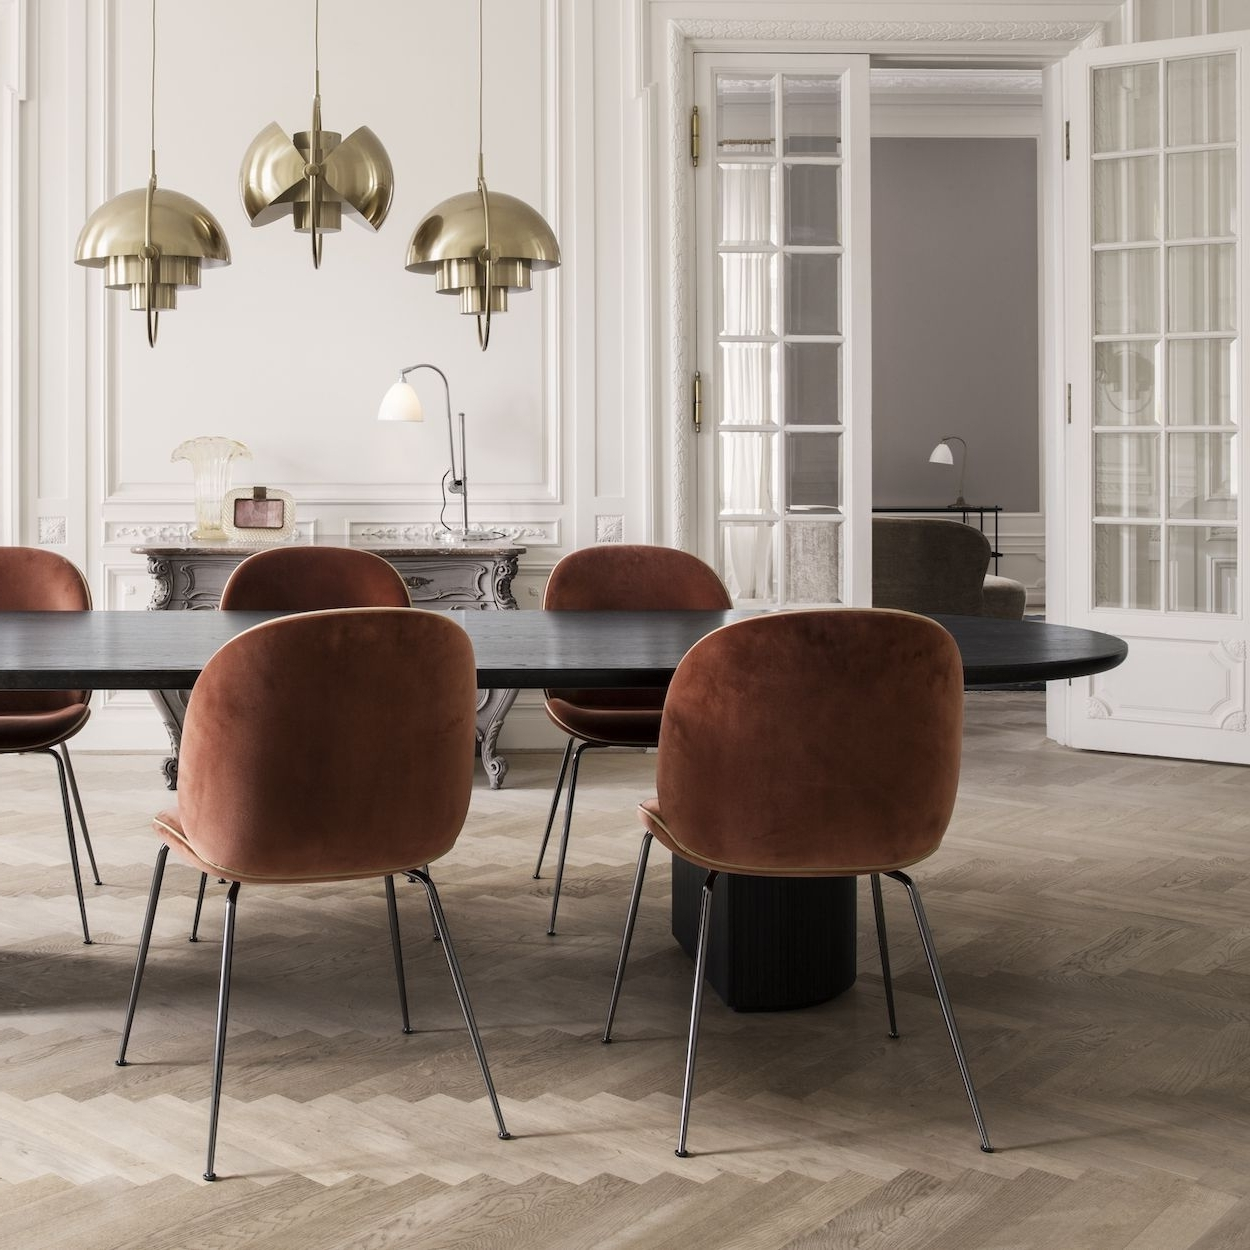 Most Popular Dark Olive Velvet Iron Dining Chairs With Regard To Image Result For Beetle Dining Chair Green Velvet With Black Legs (View 6 of 20)